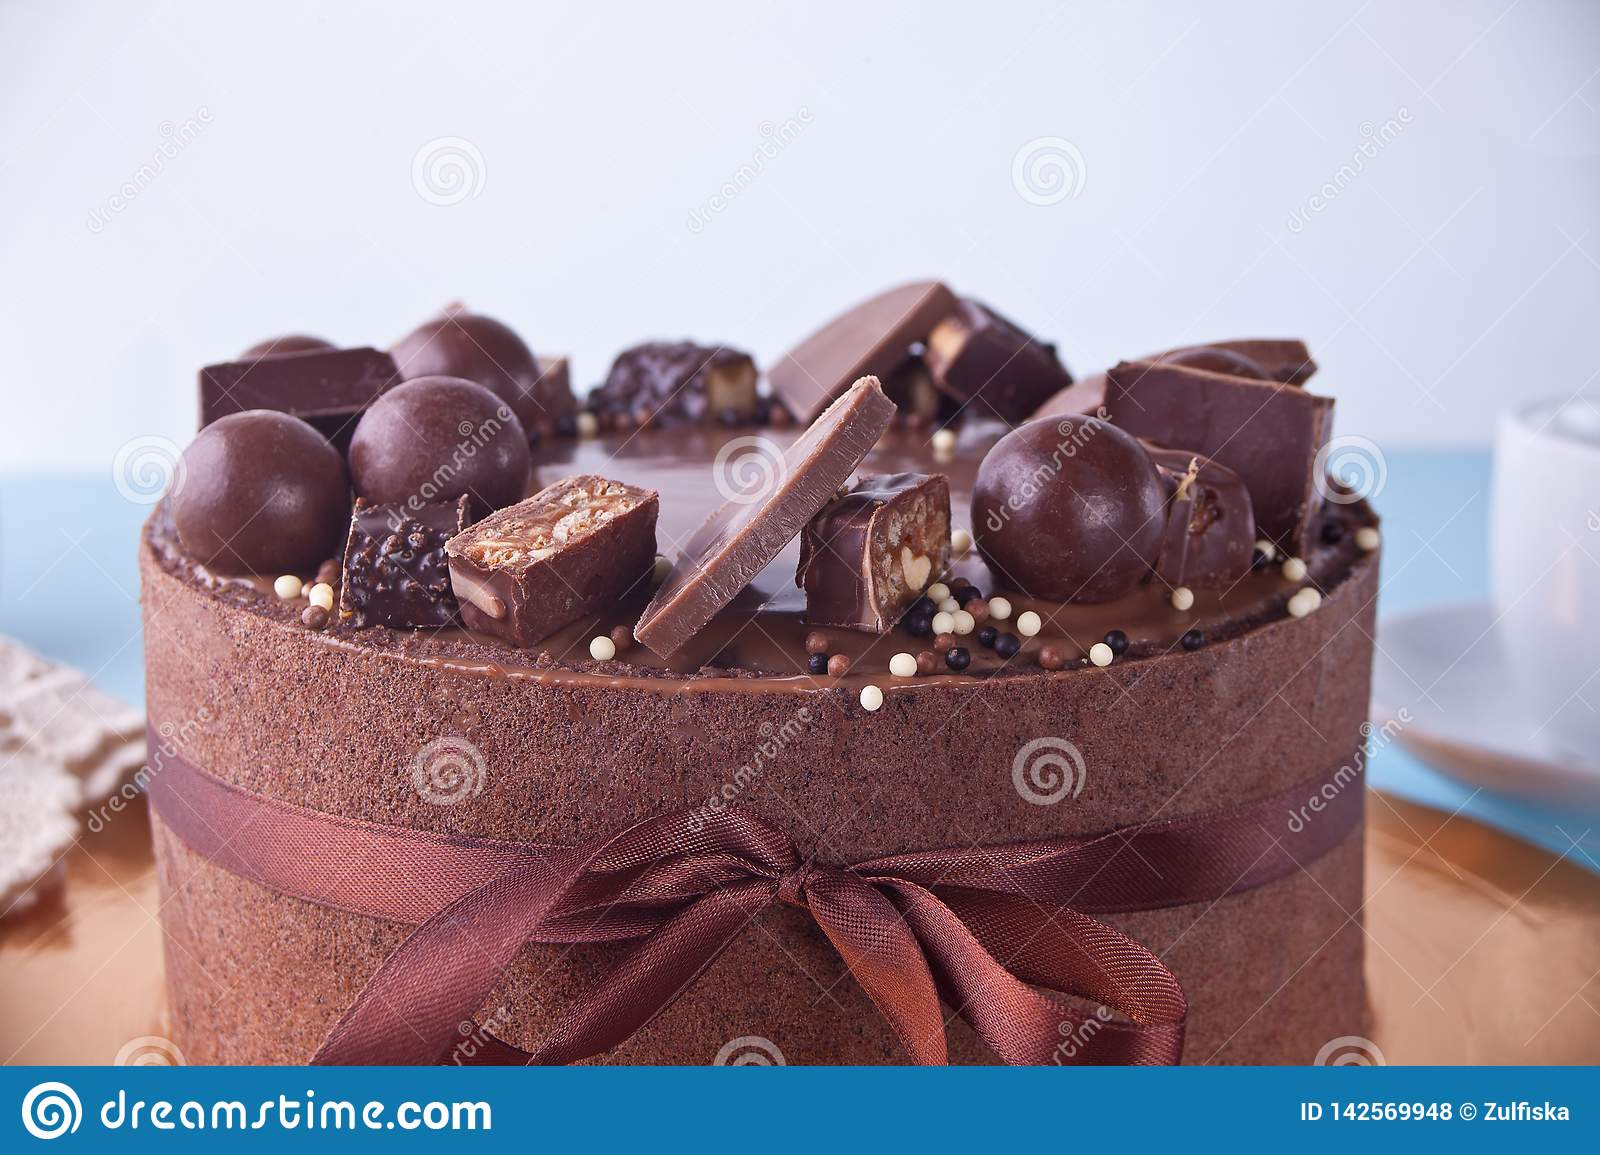 Chocolate Cake With Candy And Ribbon On A Blue Table Stock